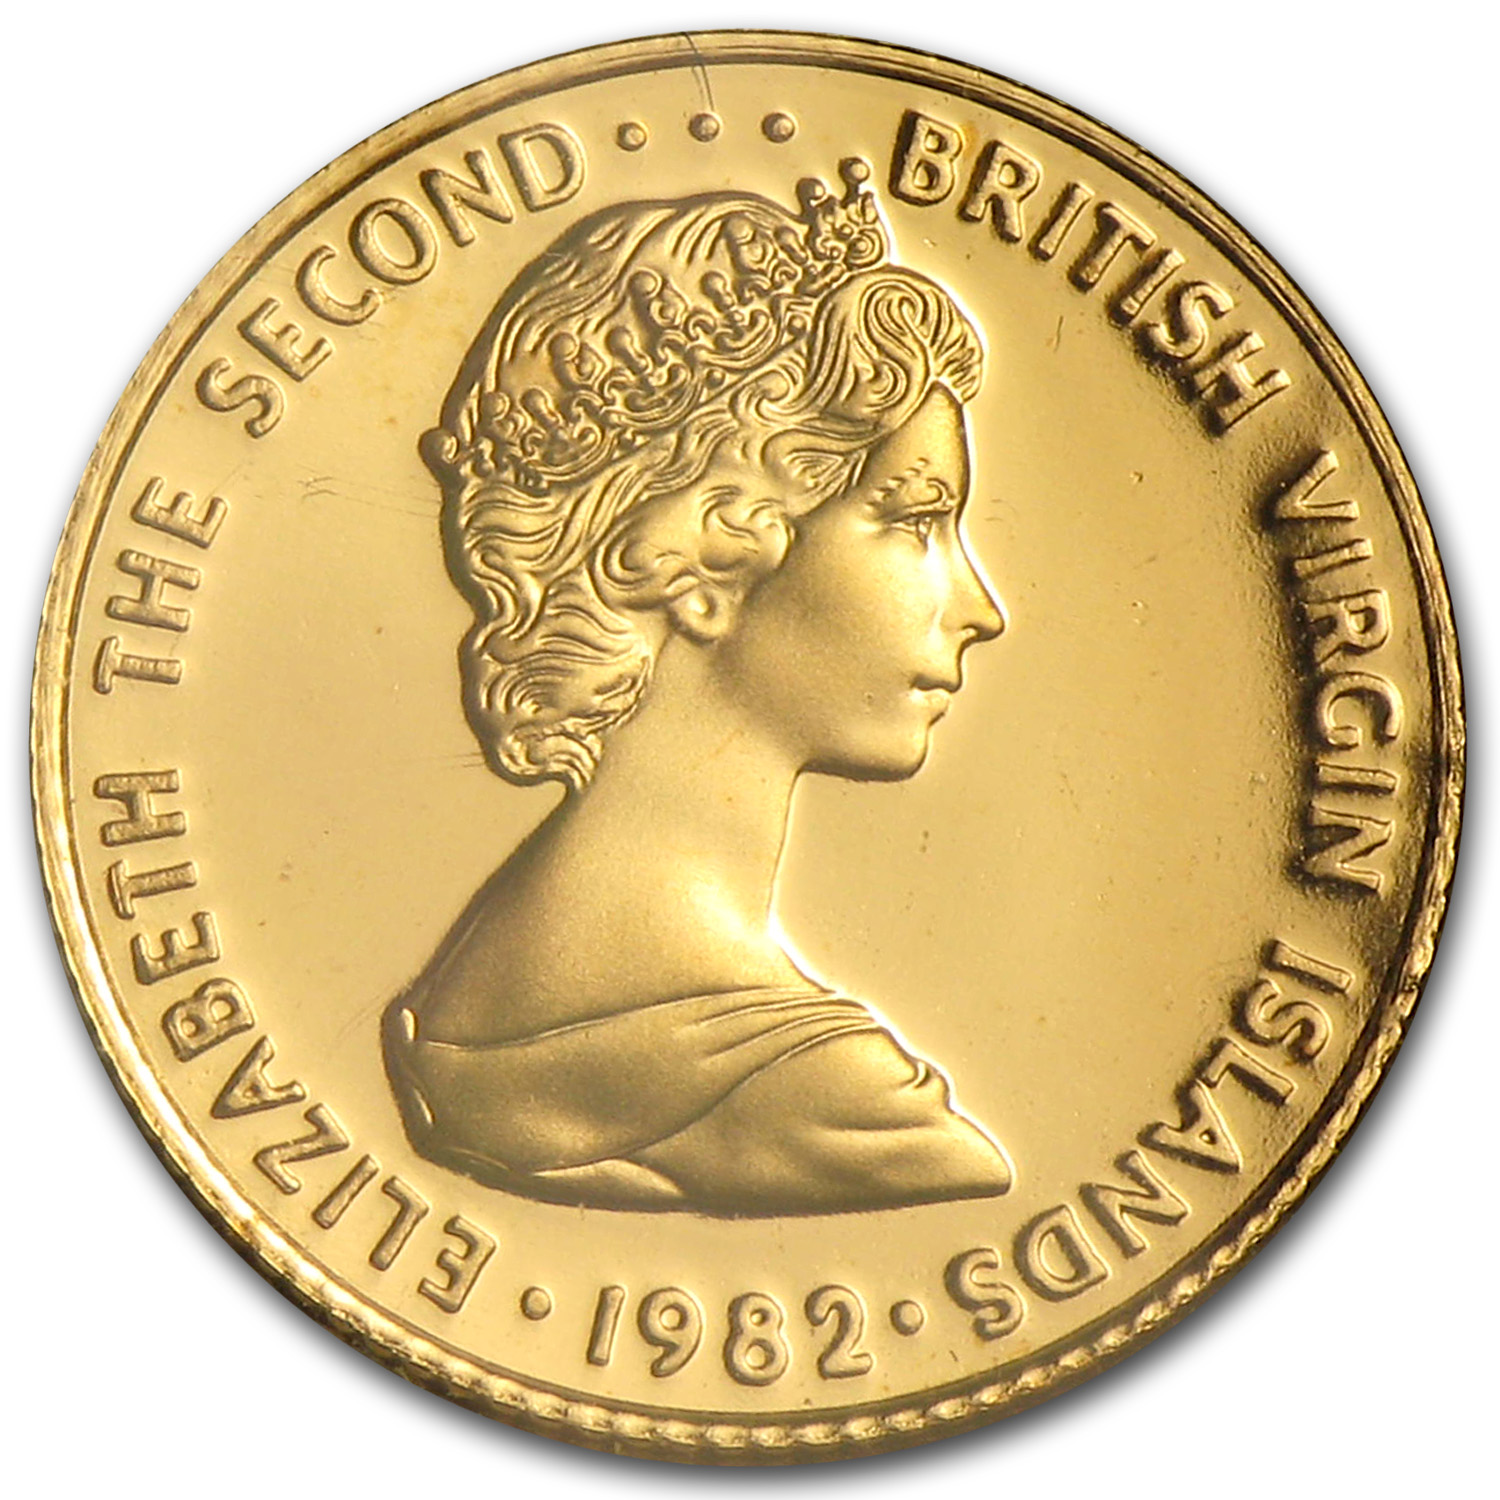 1982 British Virgin Islands Proof Gold 25 Dollars